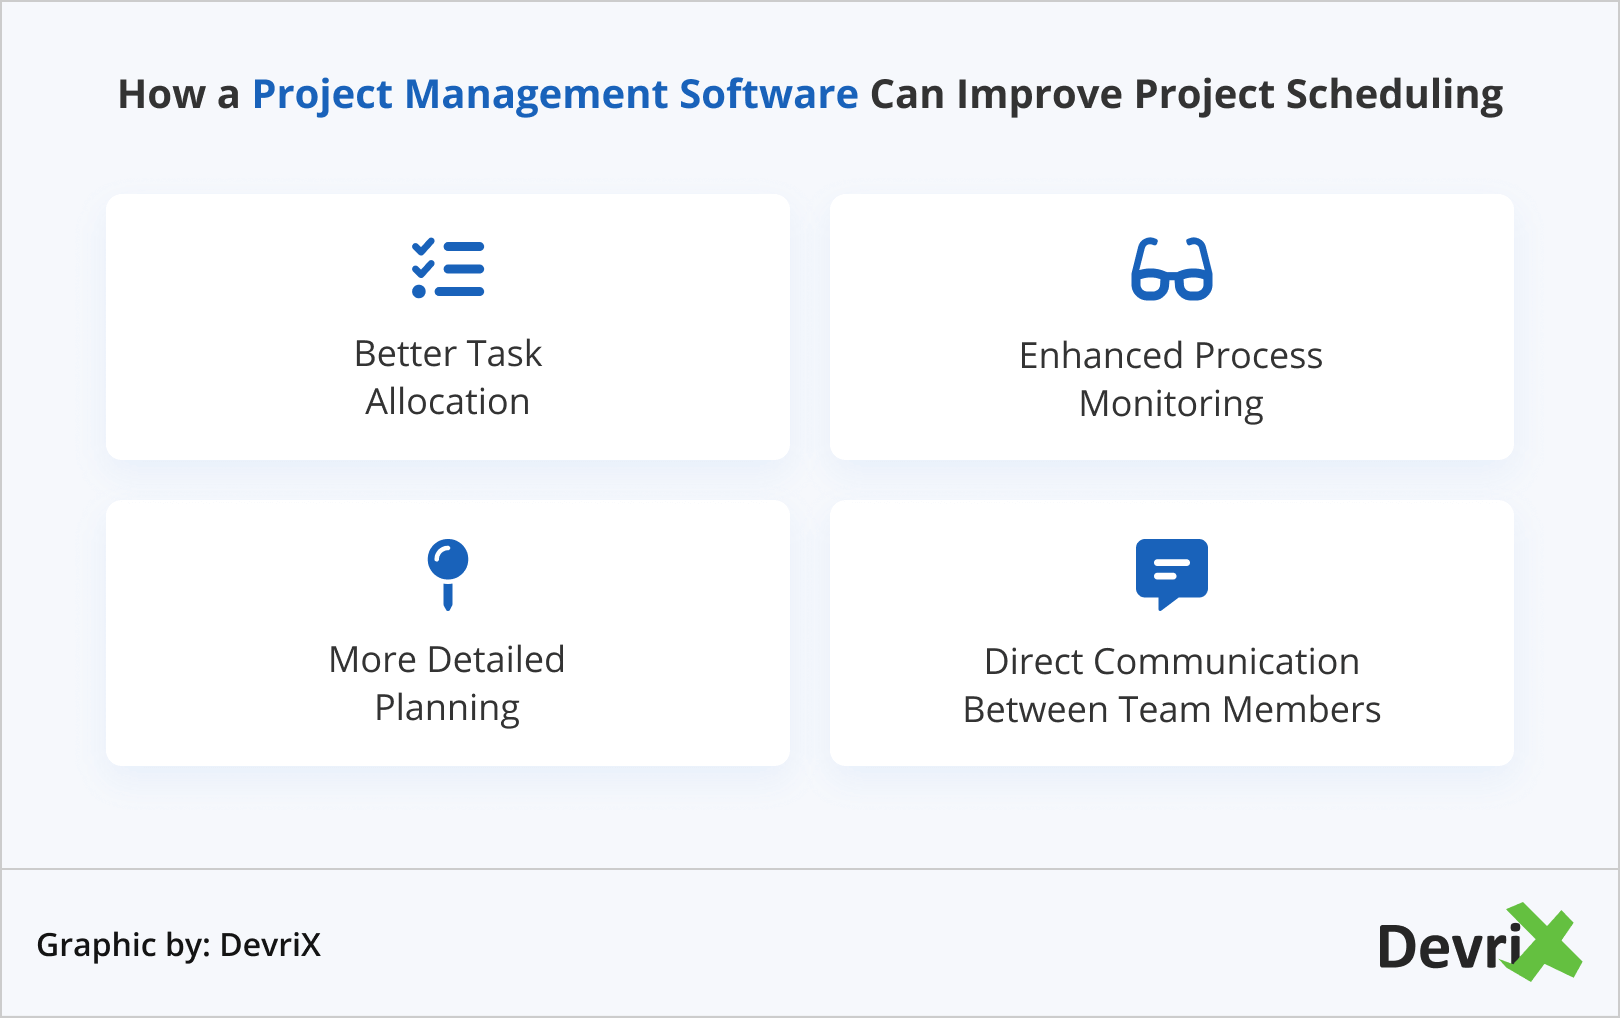 How a Project Management Software Can Improve Project Scheduling